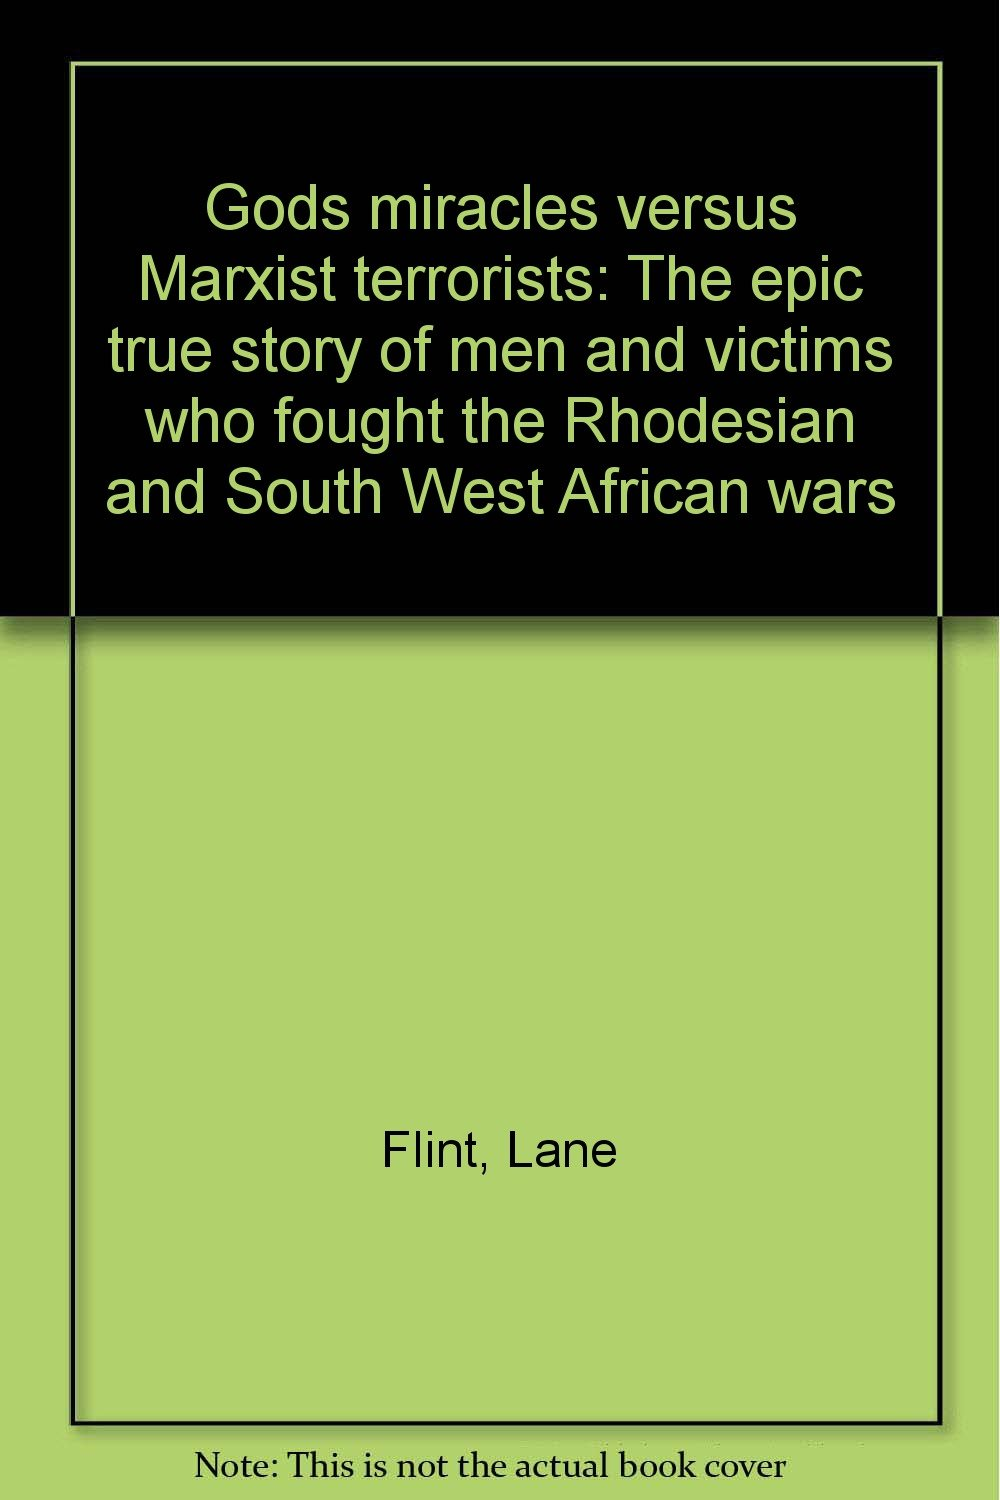 Gods miracles versus Marxist terrorists: The epic true story of men and victims who fought the Rhodesian and South West African wars